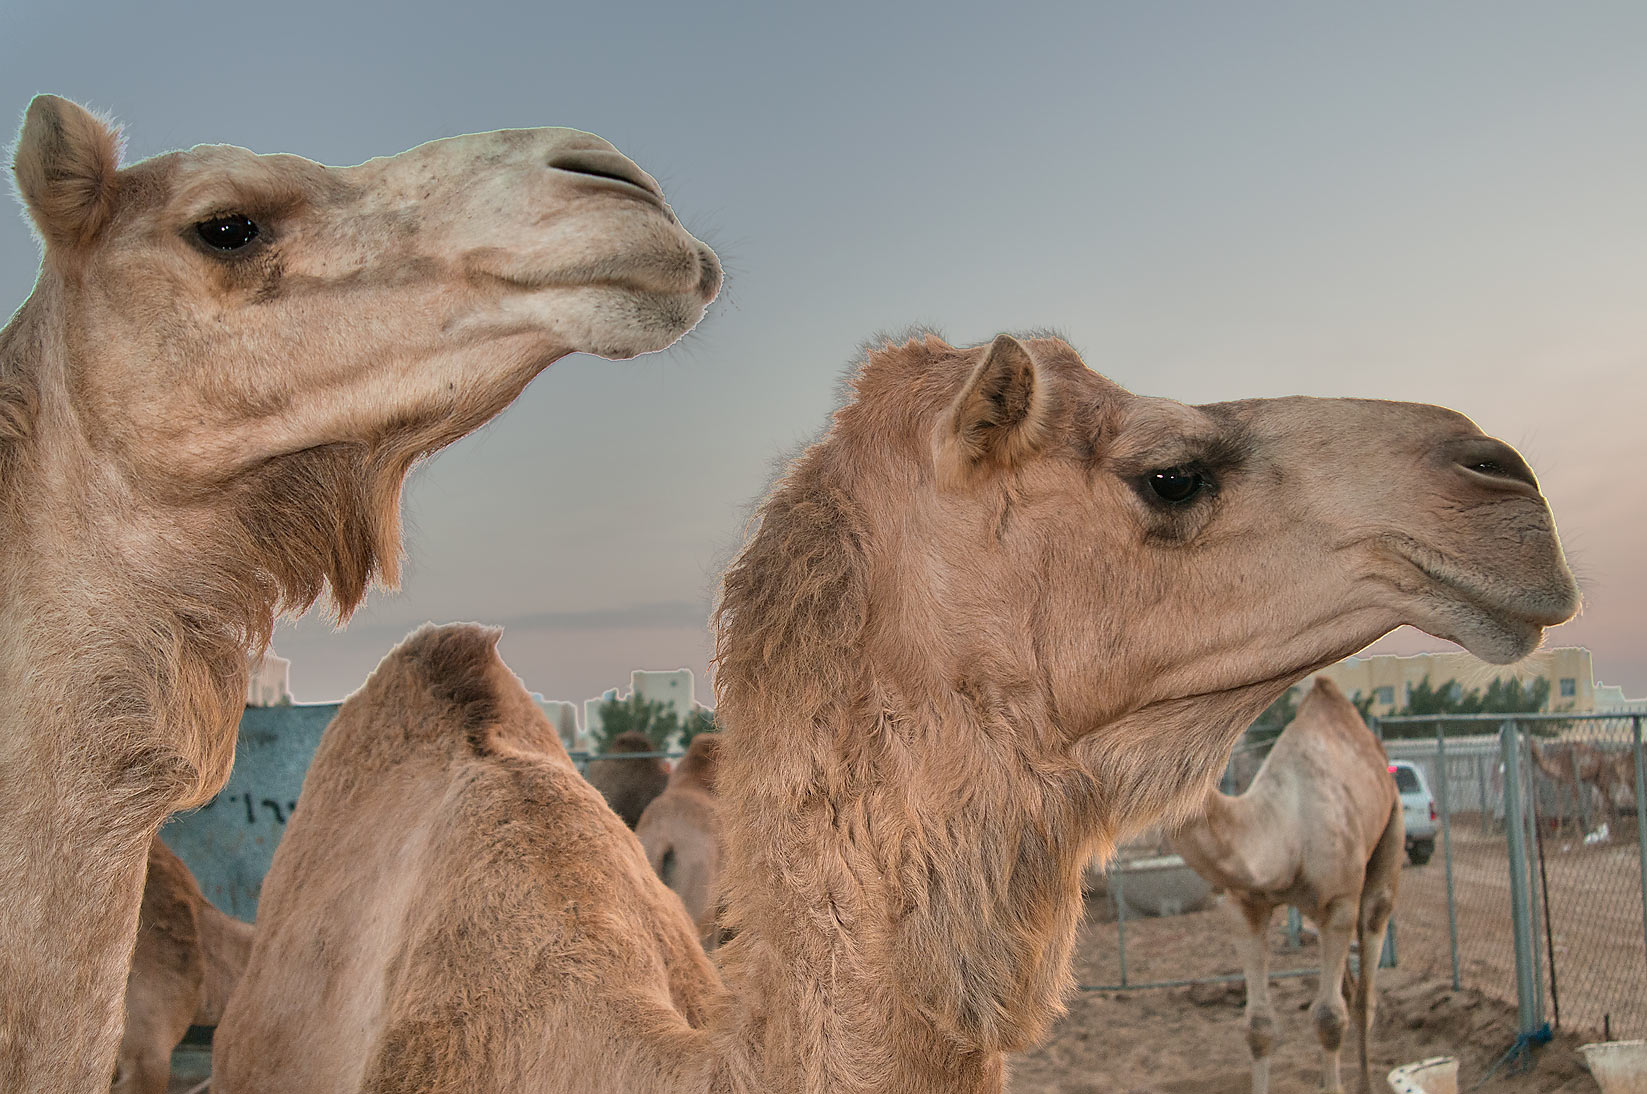 Pair of camels in Camel Market (Souq). Doha, Qatar